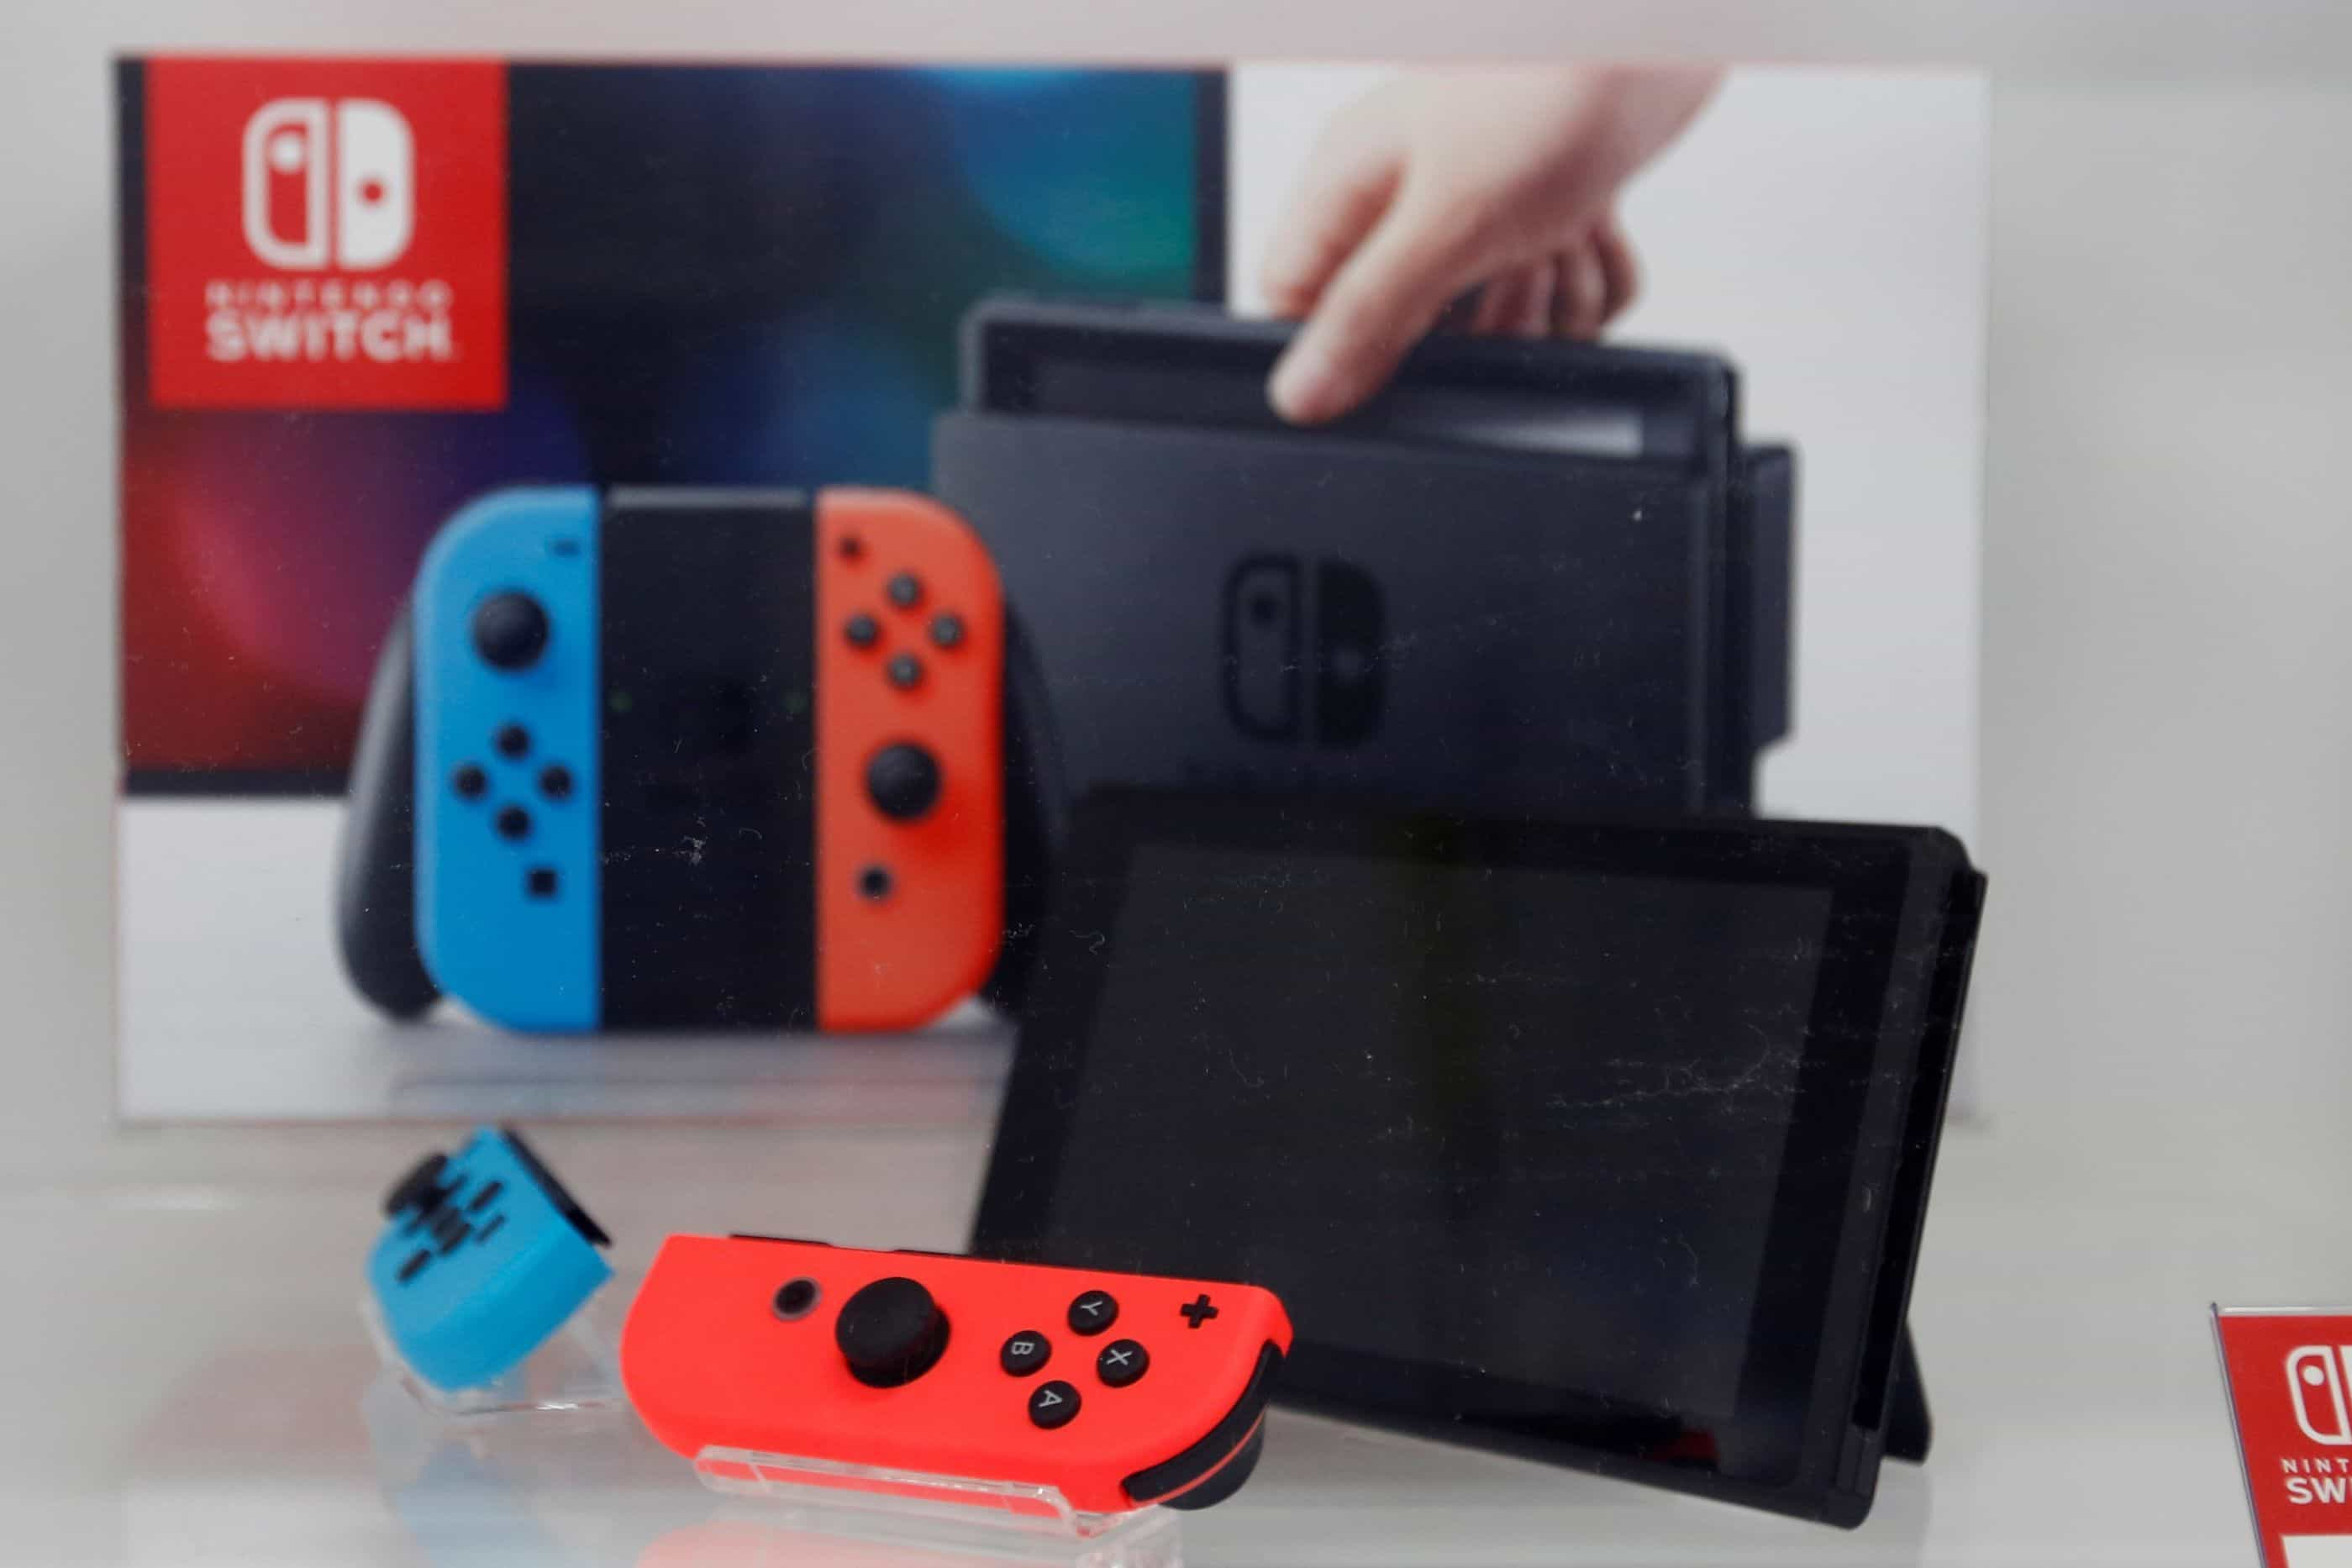 Rumor: versão mais barata da Switch chega no final do ano